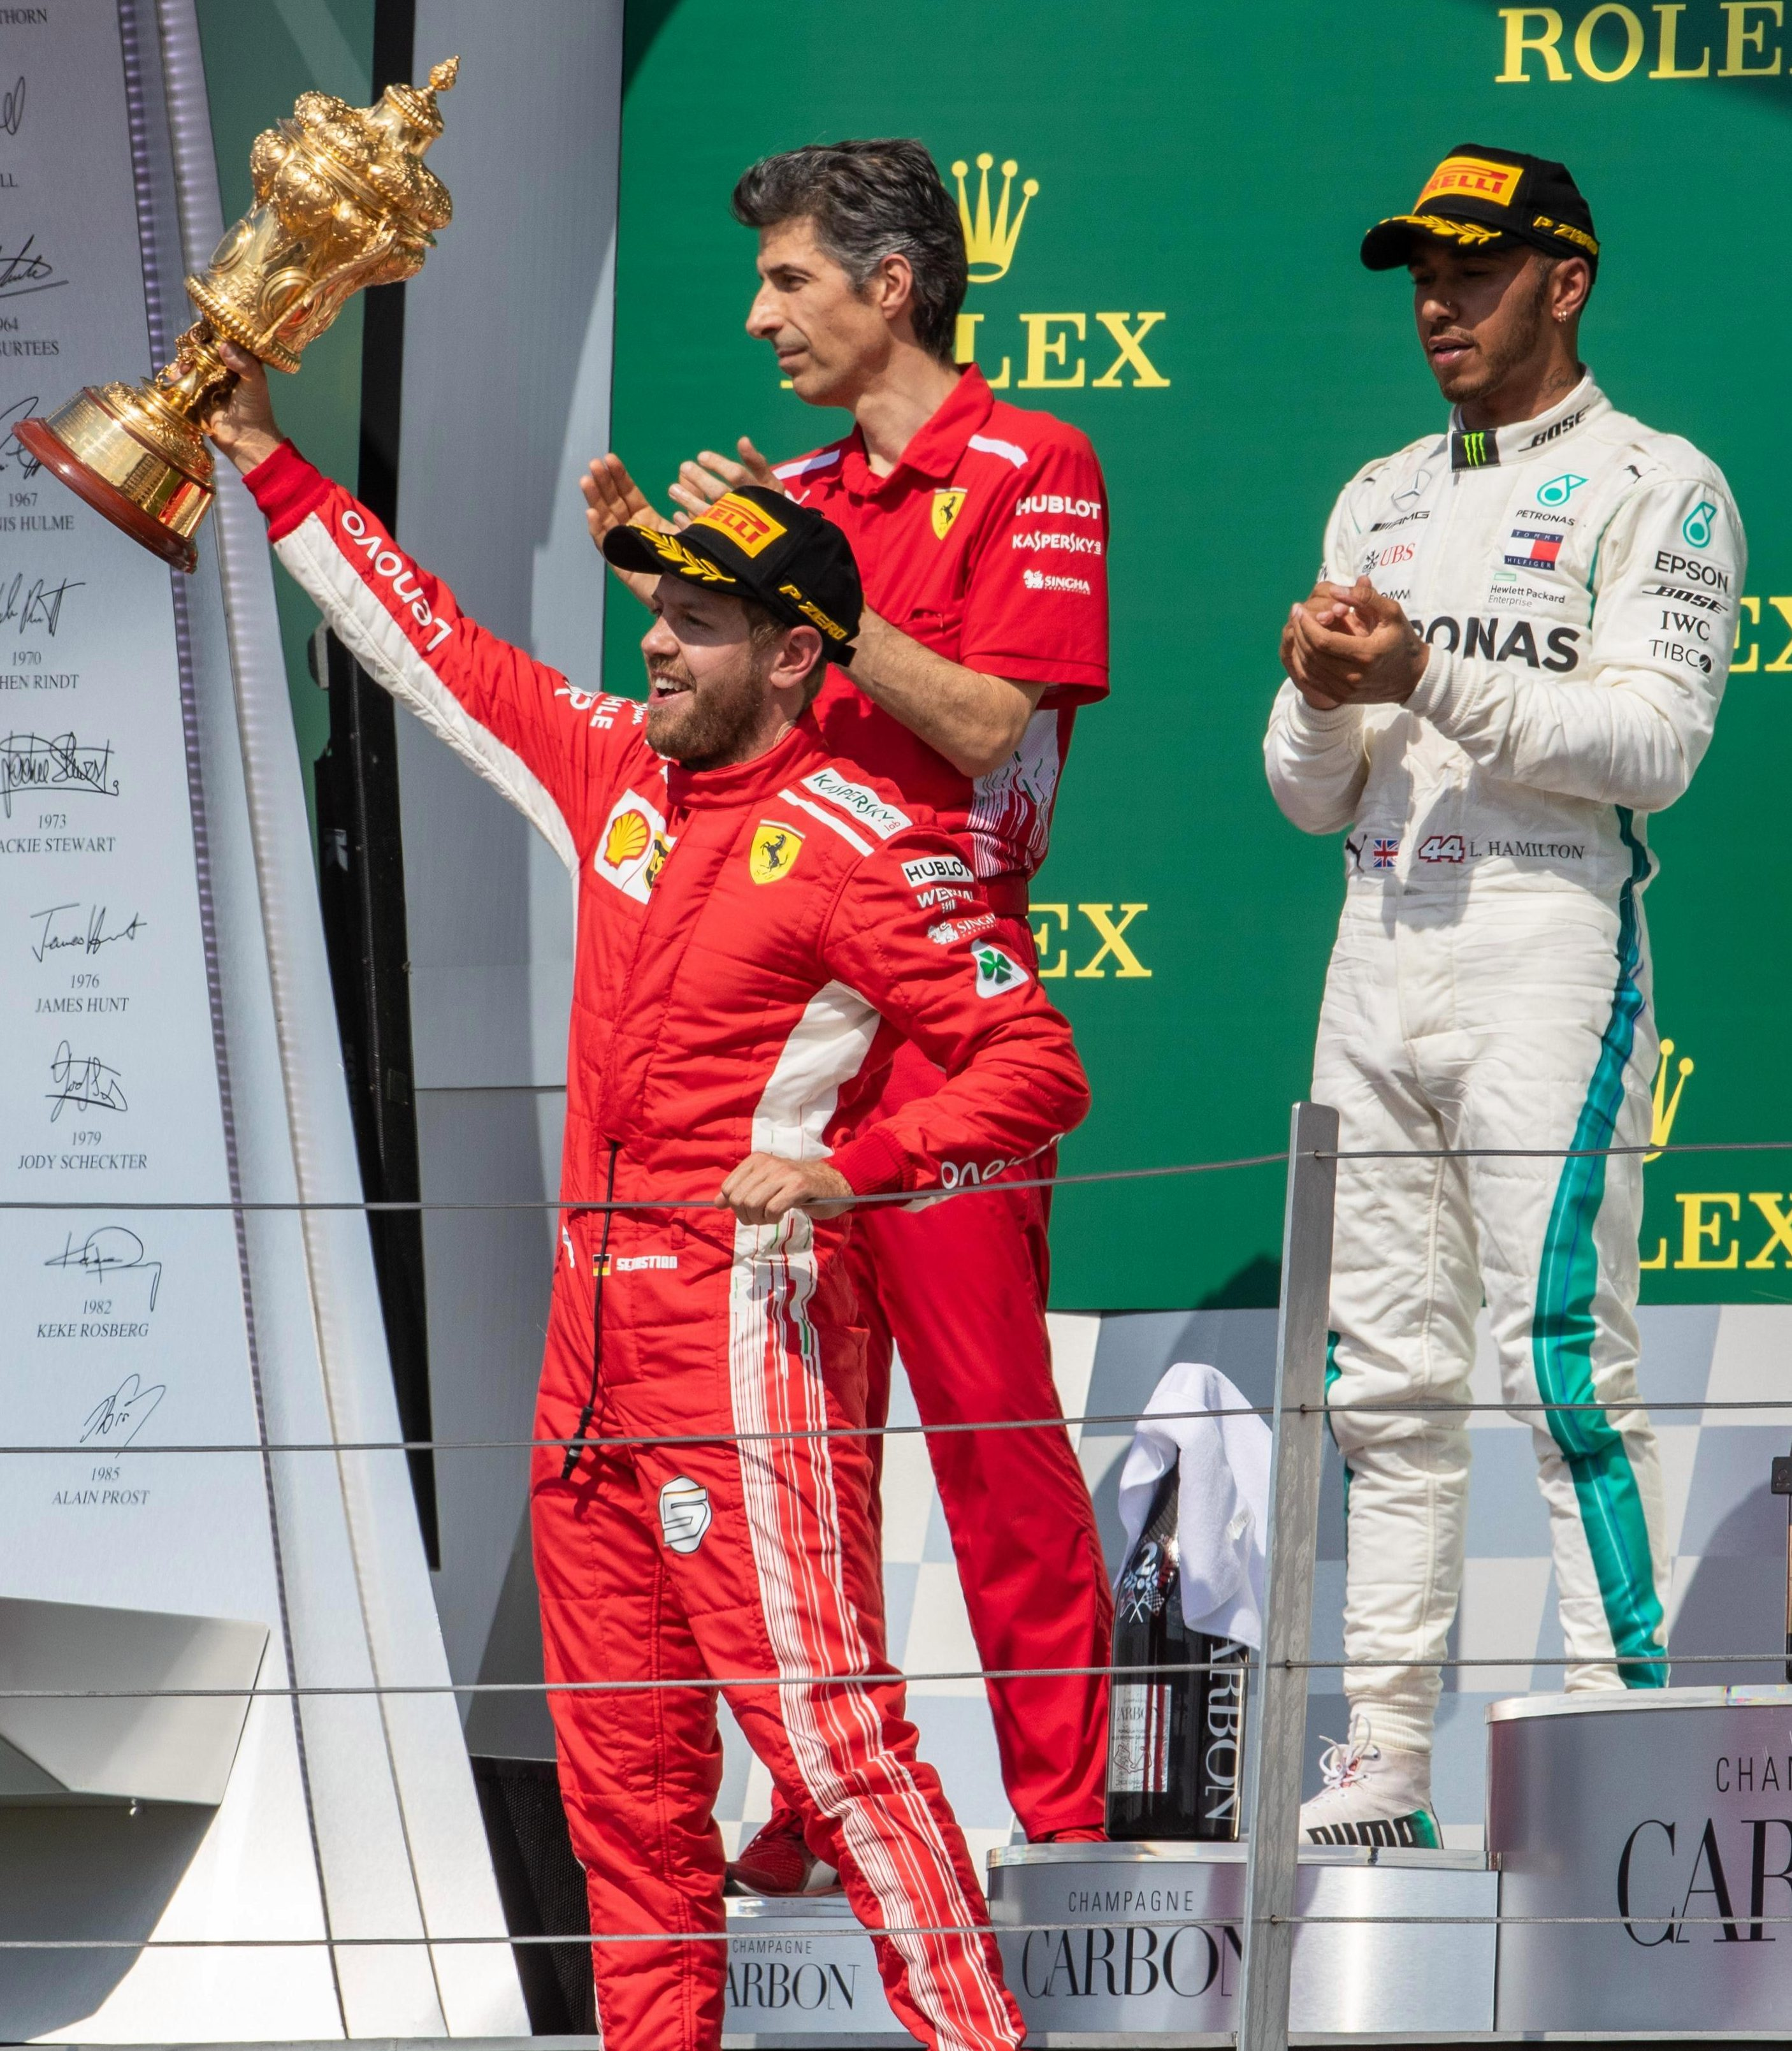 Sebastian Vettel lorded it at Silverstone and now Lewis Hamilton hopes to do the same in Germany this weekend